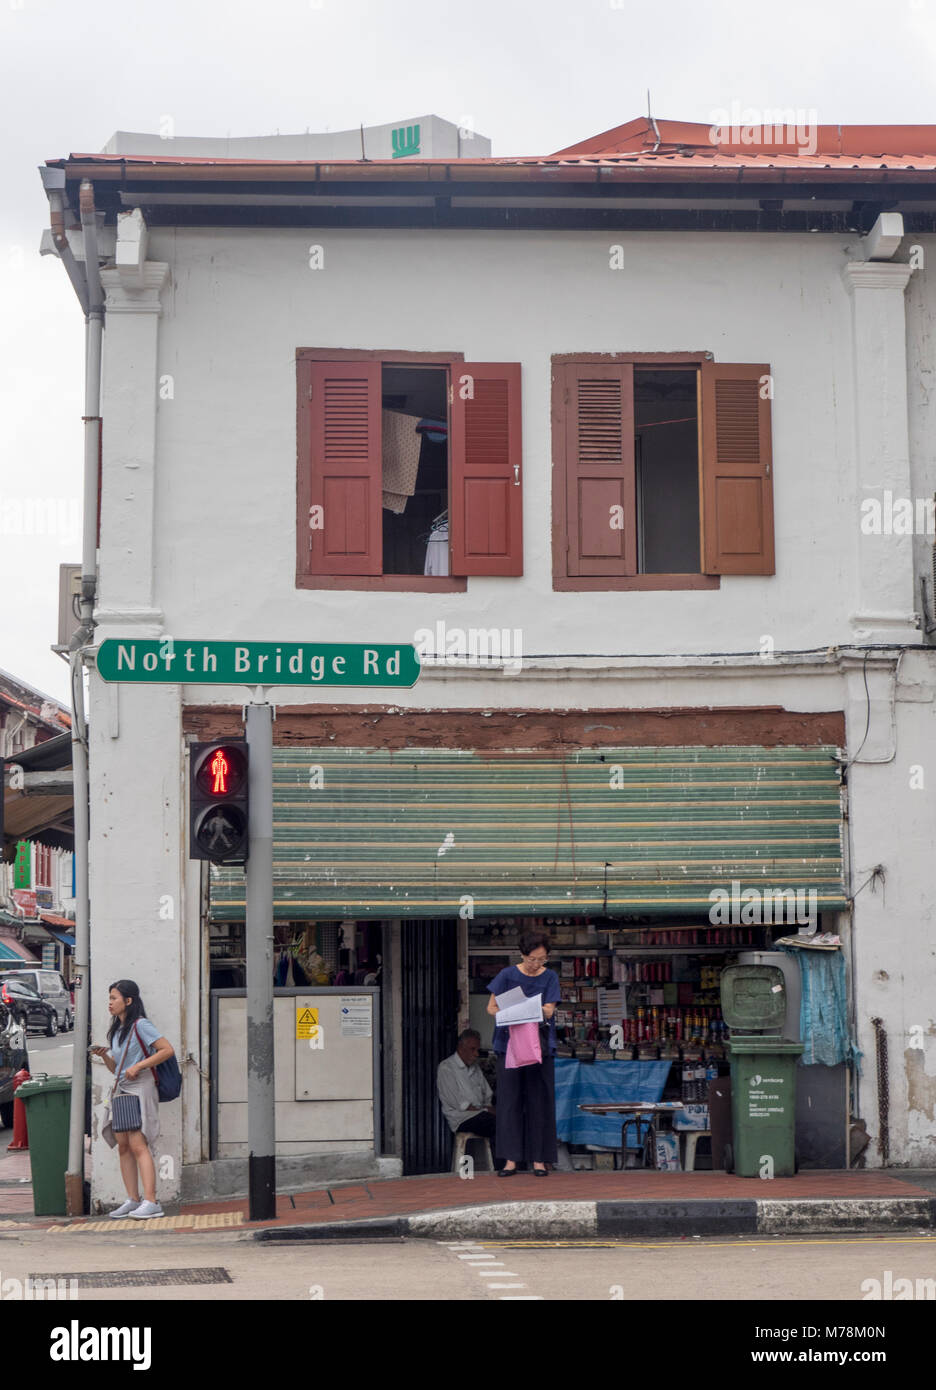 A traditional shophouse on North Bridge Road, Singapore. - Stock Image